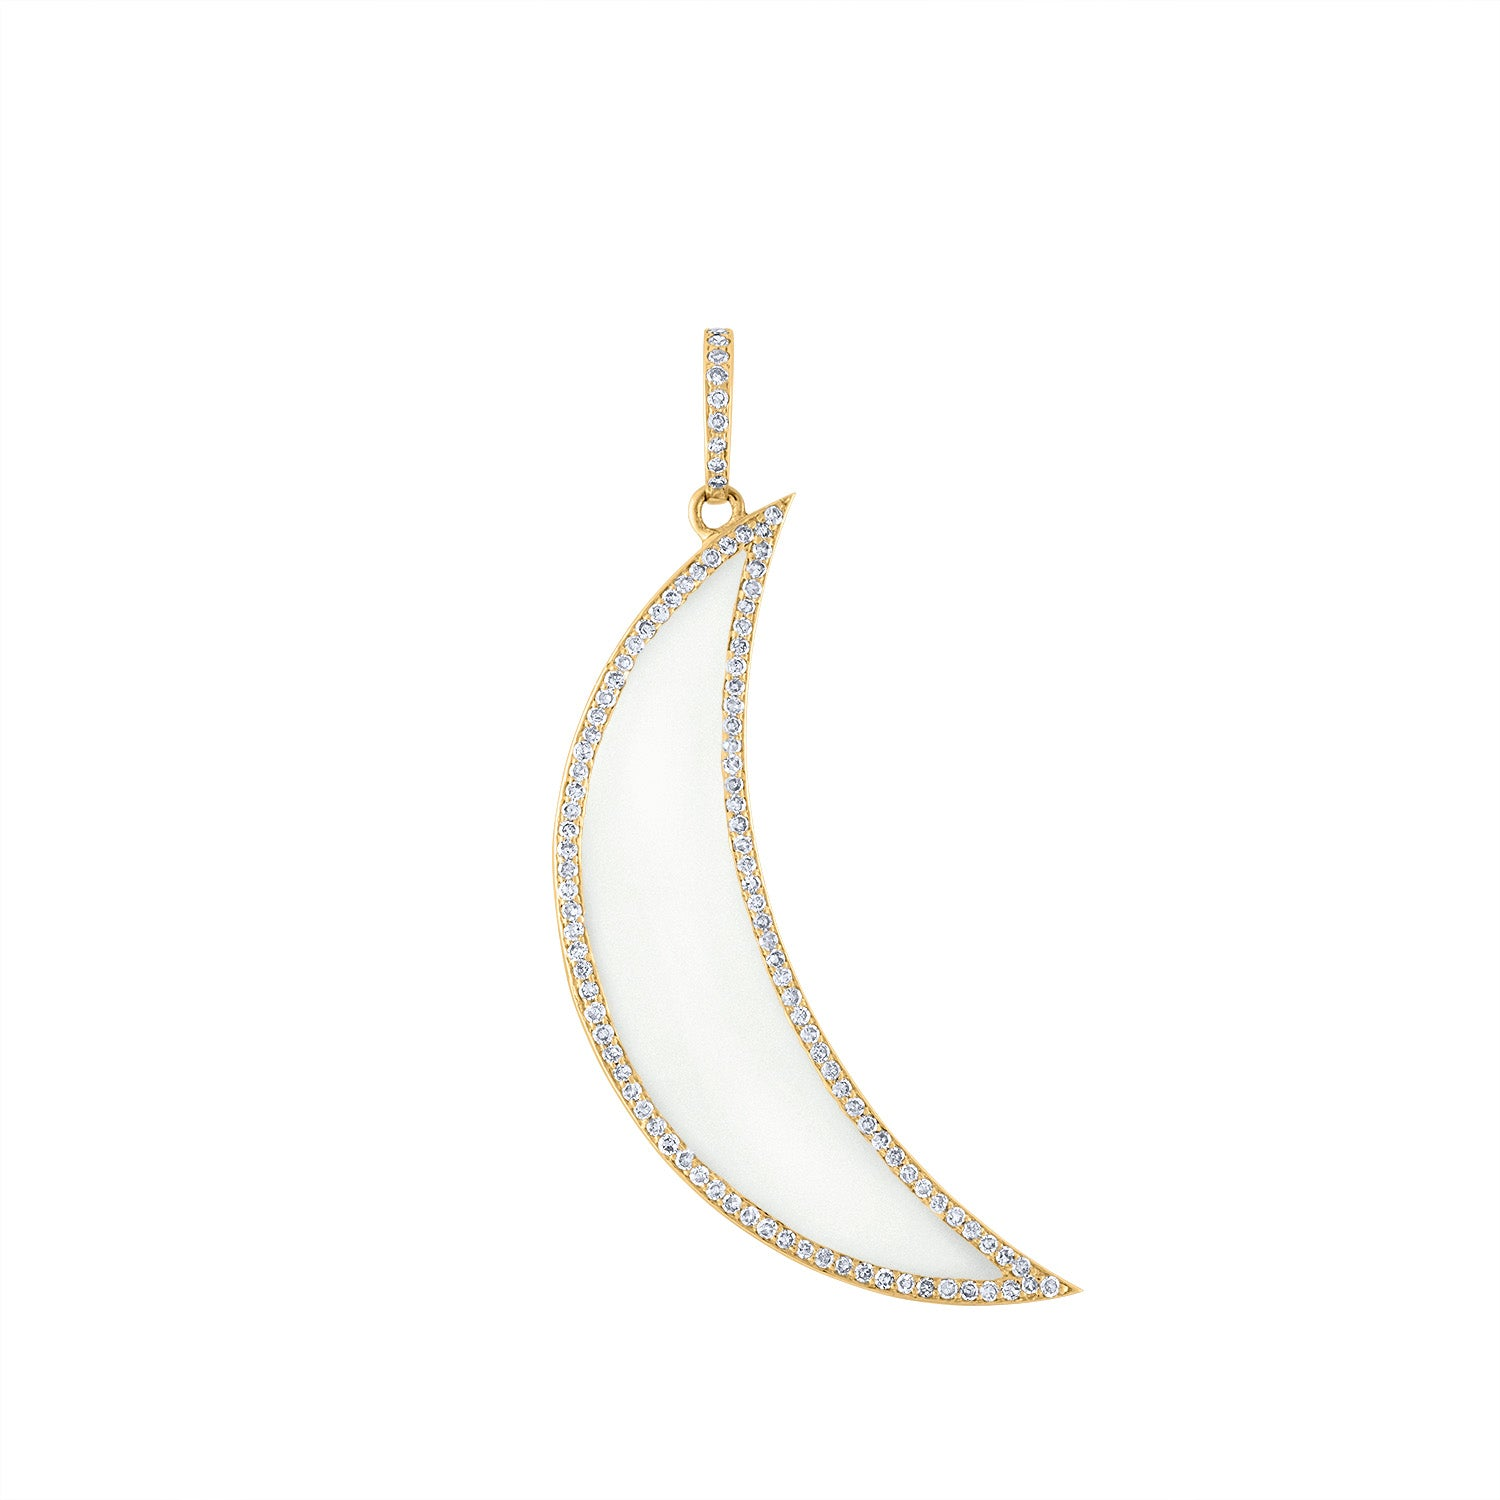 14KT YELLOW GOLD XL WHITE ENAMEL AND DIAMOND CRESCENT MOON CHARM